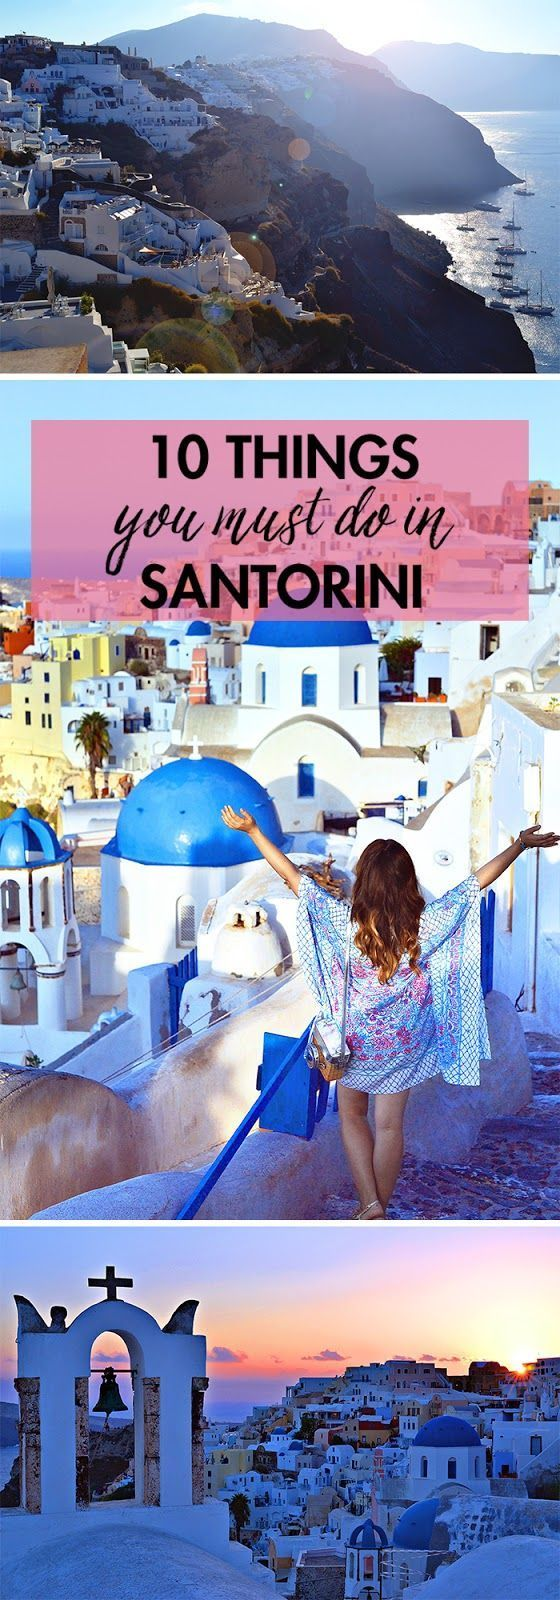 10 Things You Must Do in Santorini, Greece | Greek Island Travel Tips